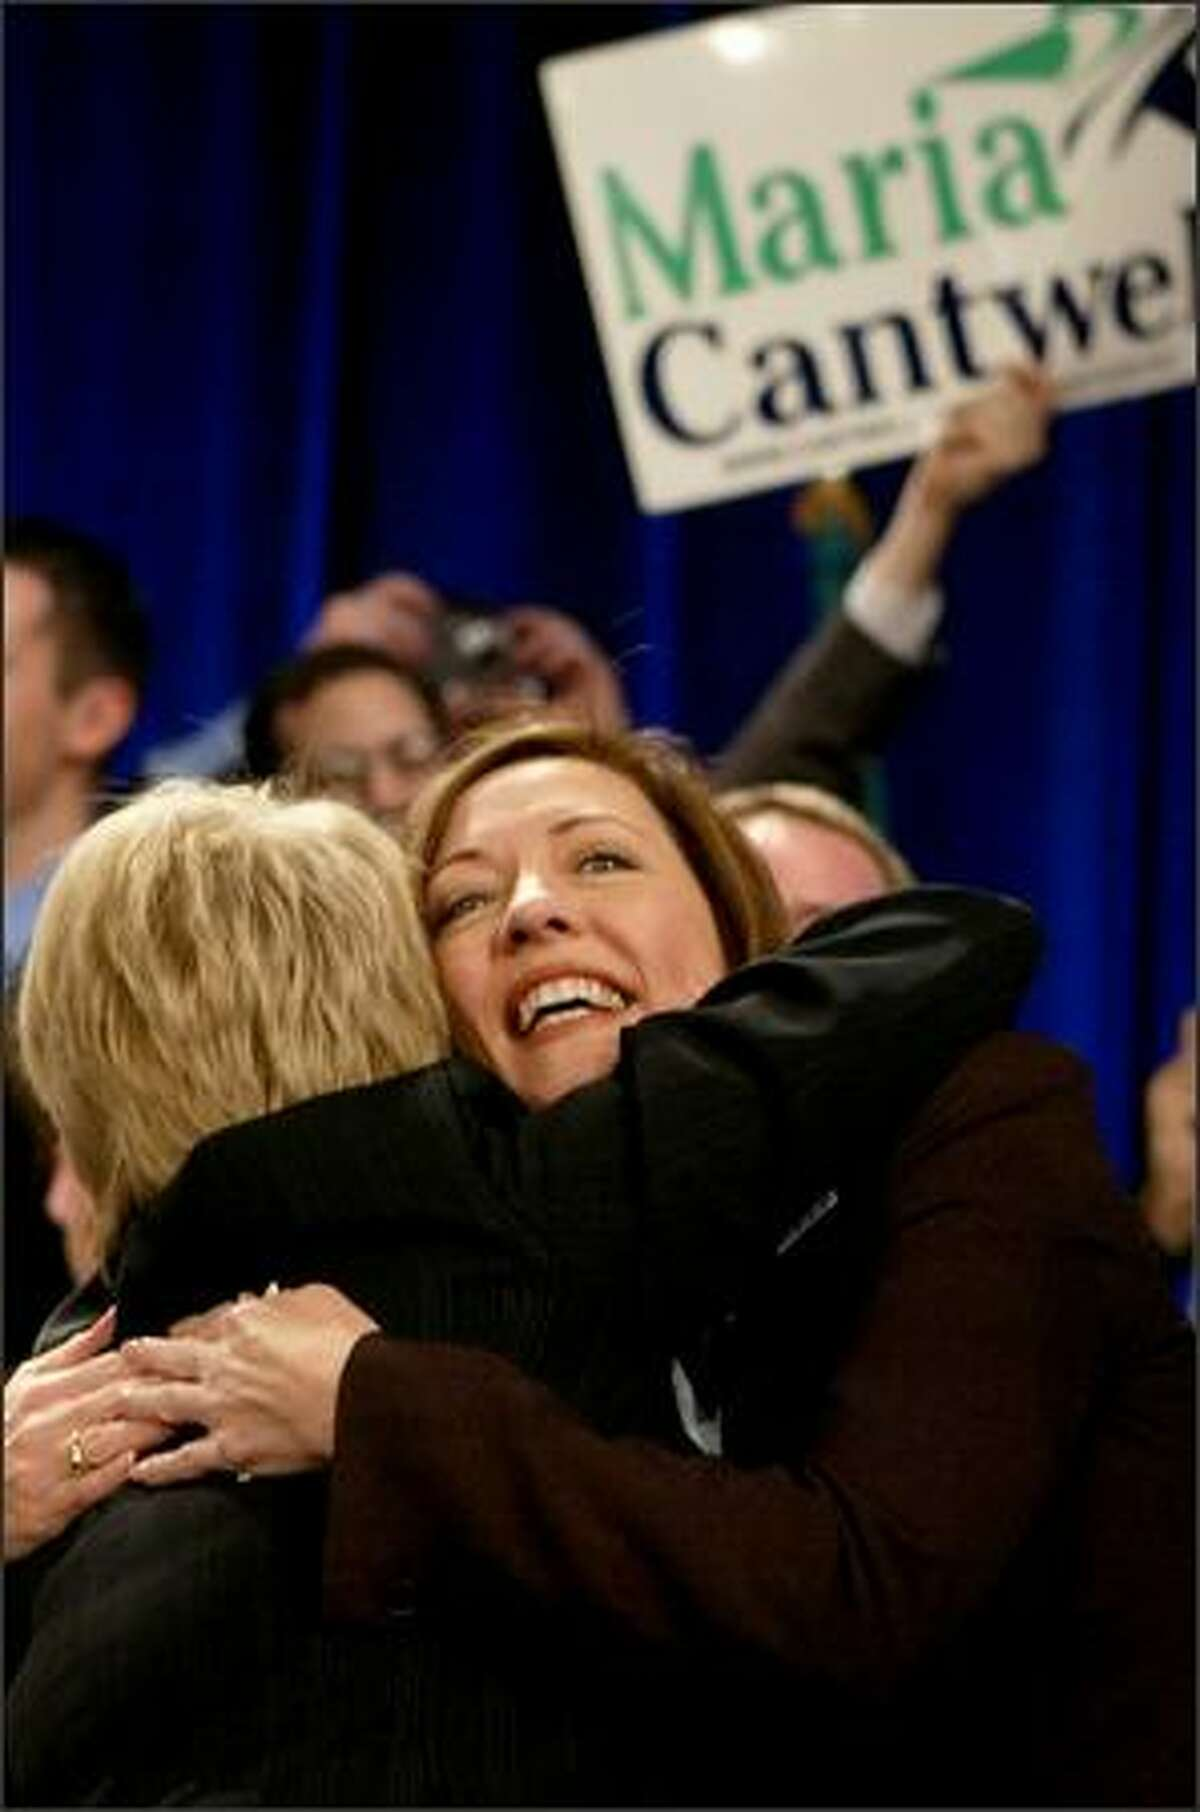 Democratic Sen. Maria Cantwell, running for reelection against Mike McGavick, hugs U.S. Sen. Patty Murray during an election party on Tuesday at the Sheraton Hotel in Seattle.